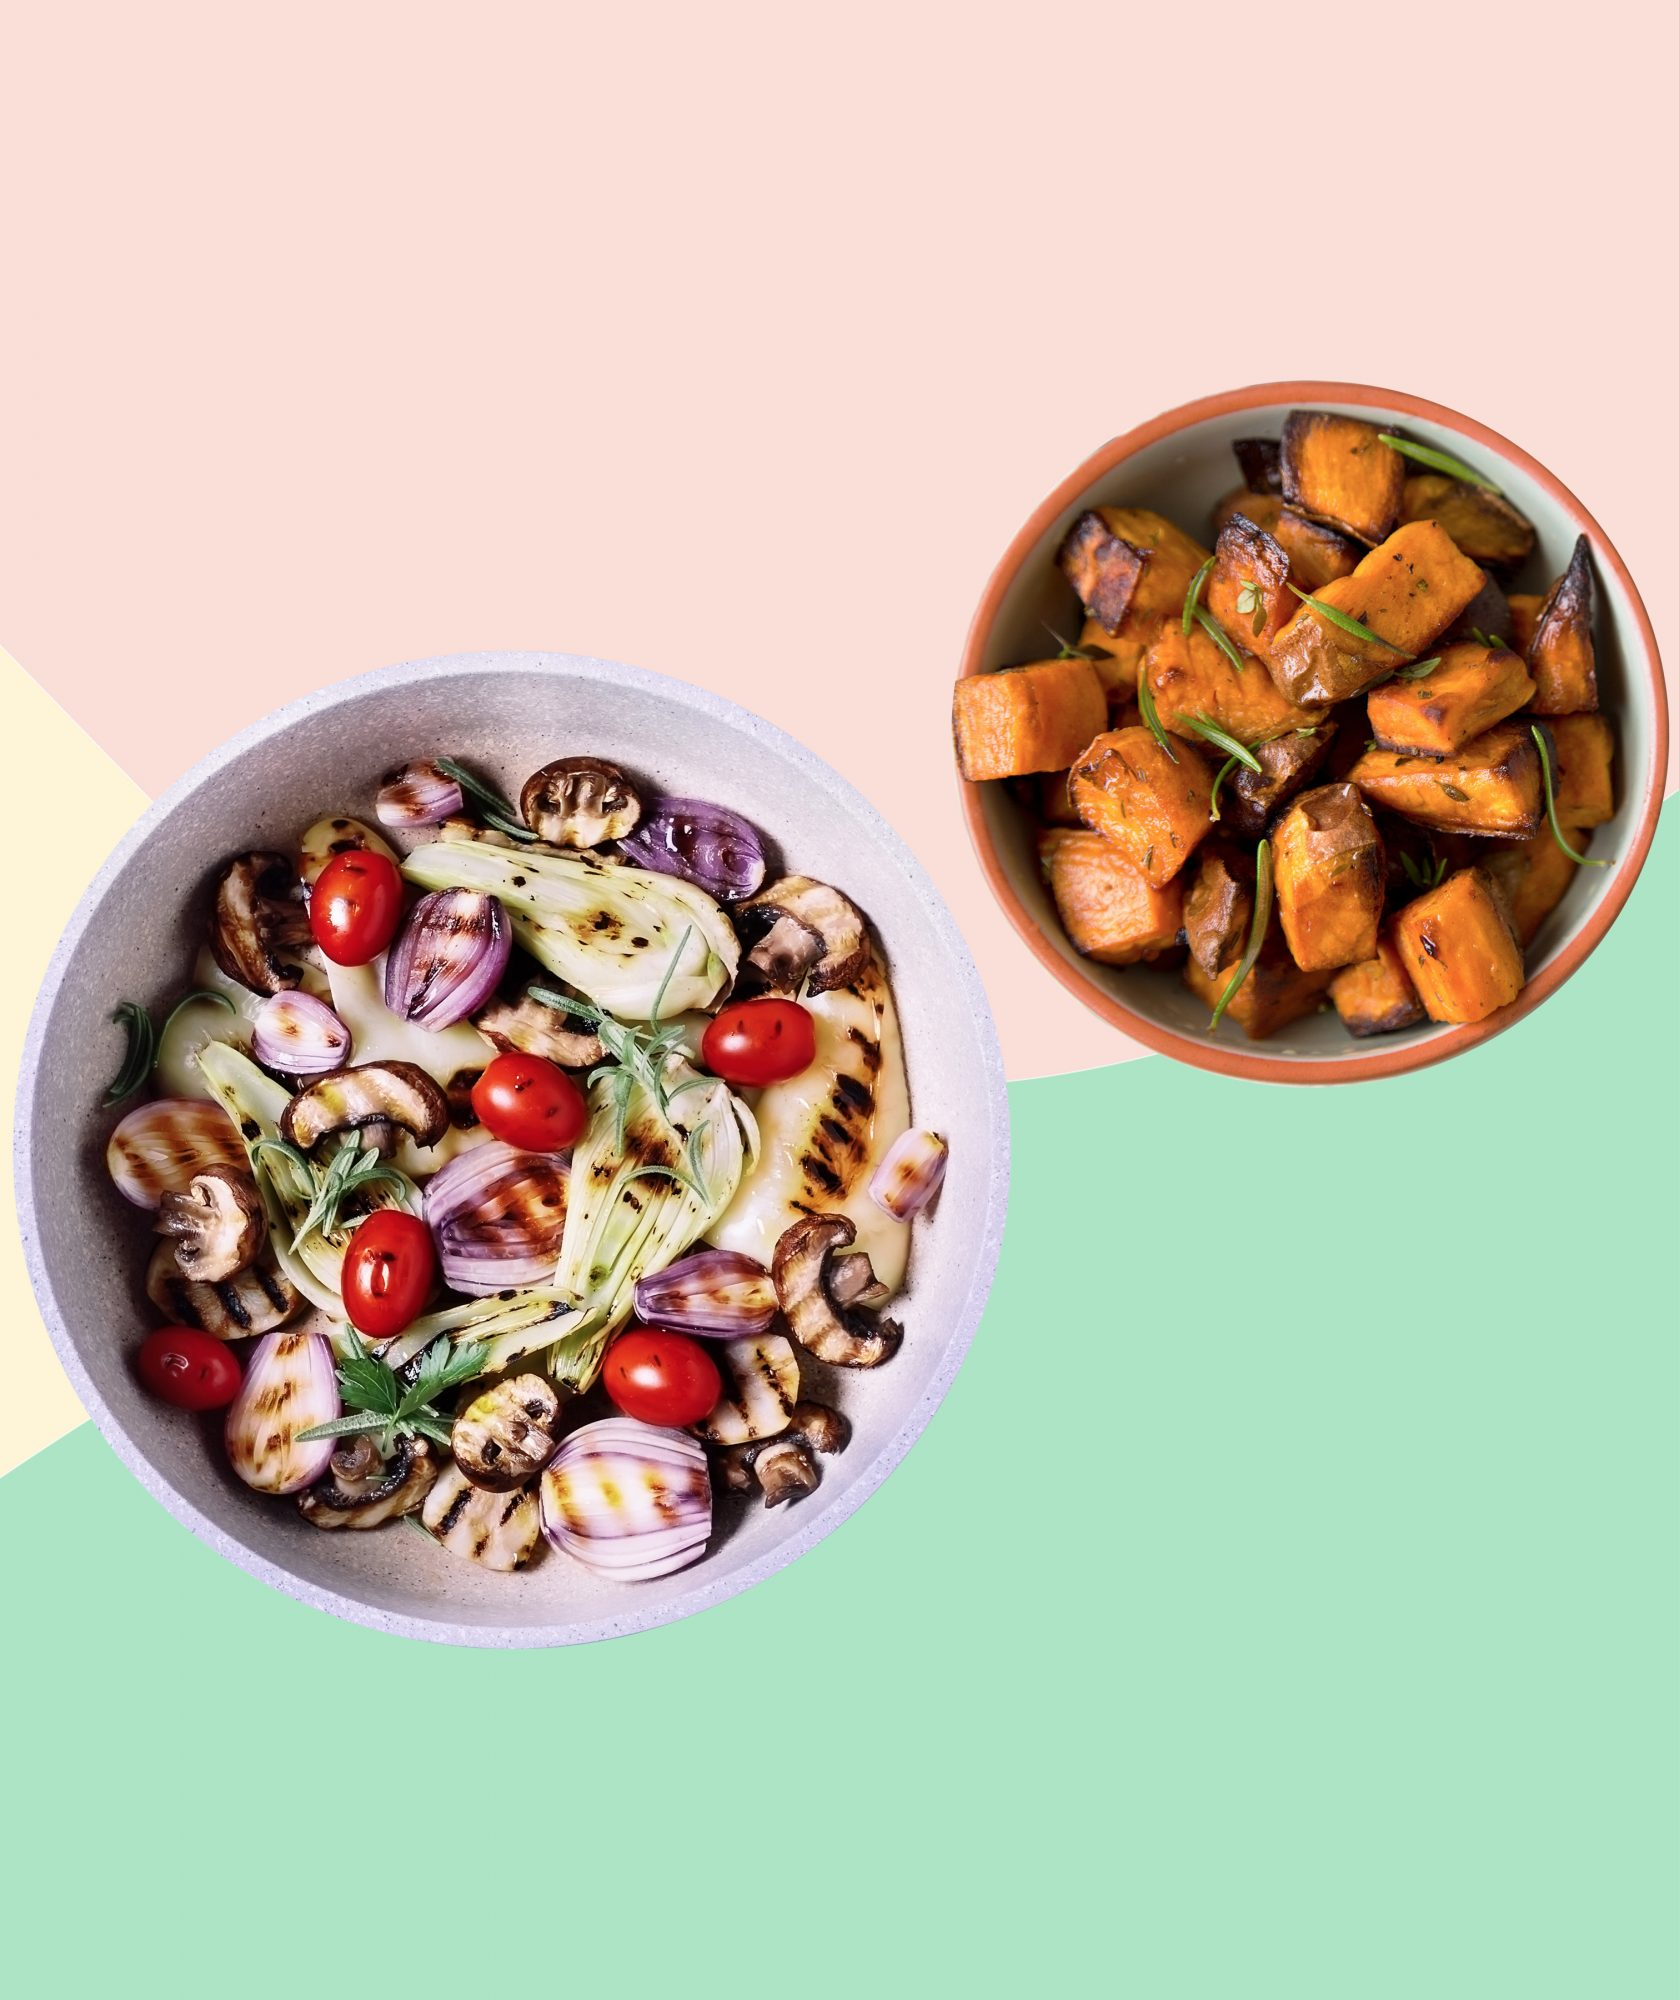 I Coated Roasted Vegetables in This Pantry Staple and the Results Were Unreal